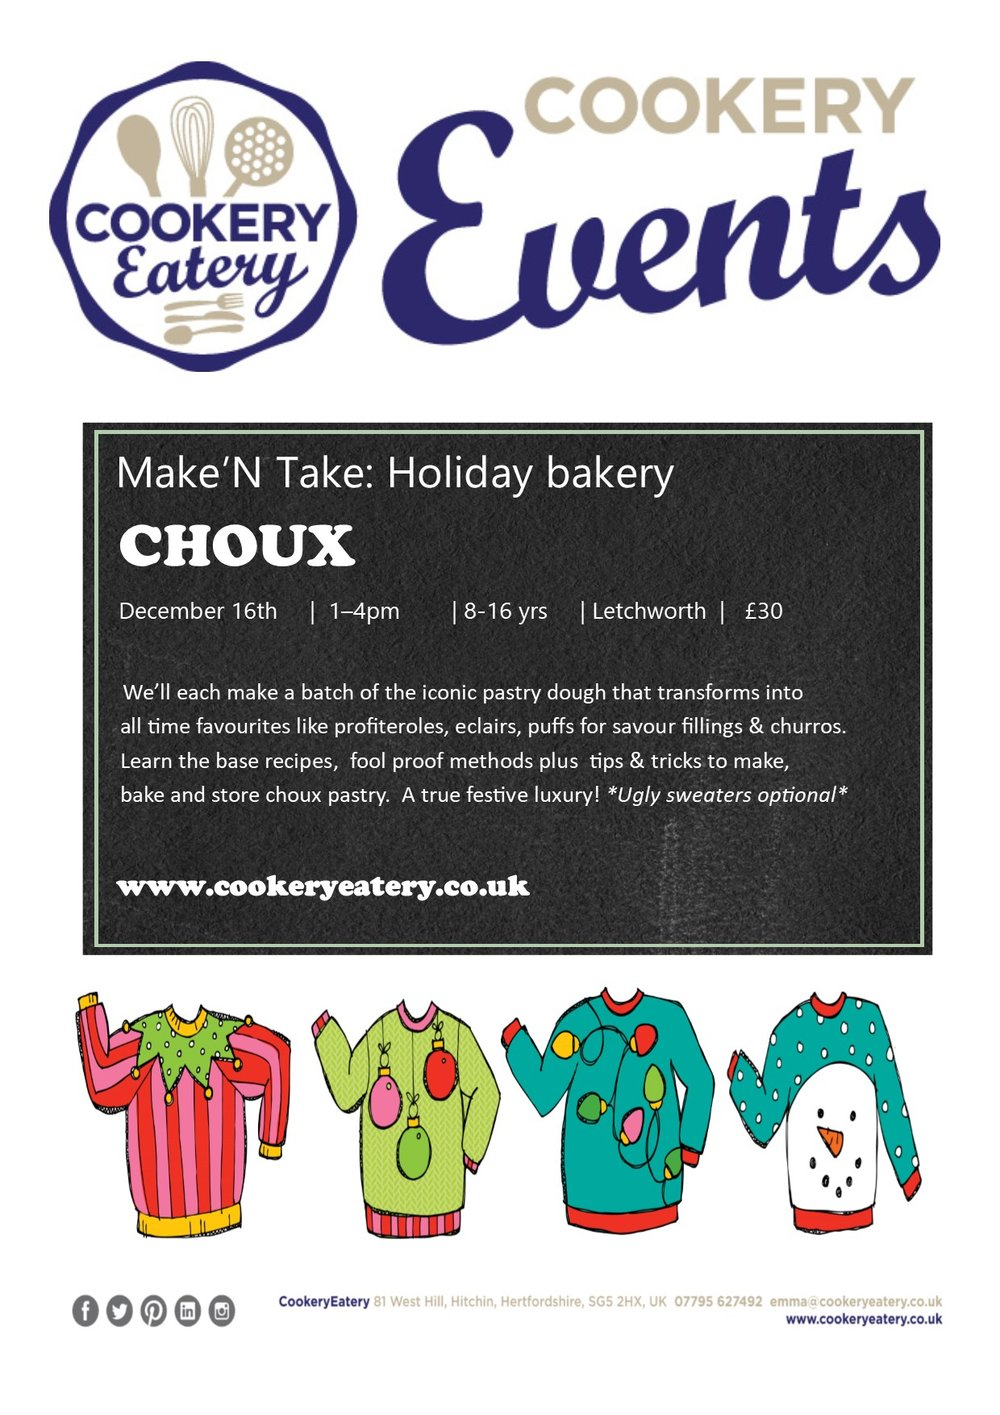 CookeryEatery.MAKE N TAKE. Holiday Bakery.CHOUX.Dec17.jpg